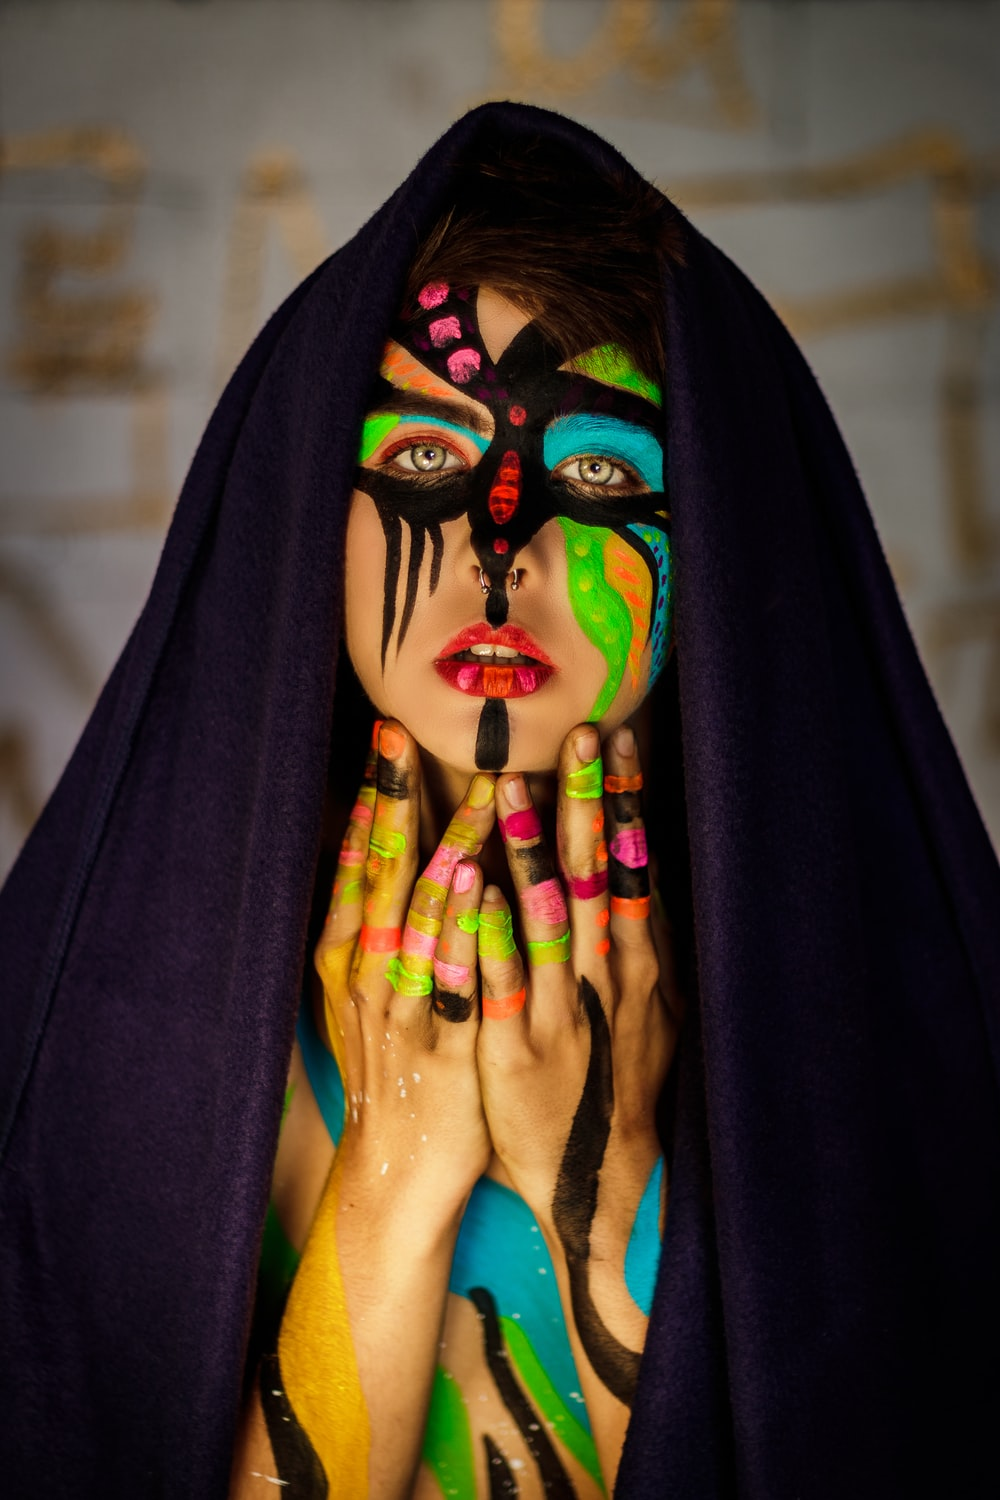 woman in black cloak with multicolored facial and body paint